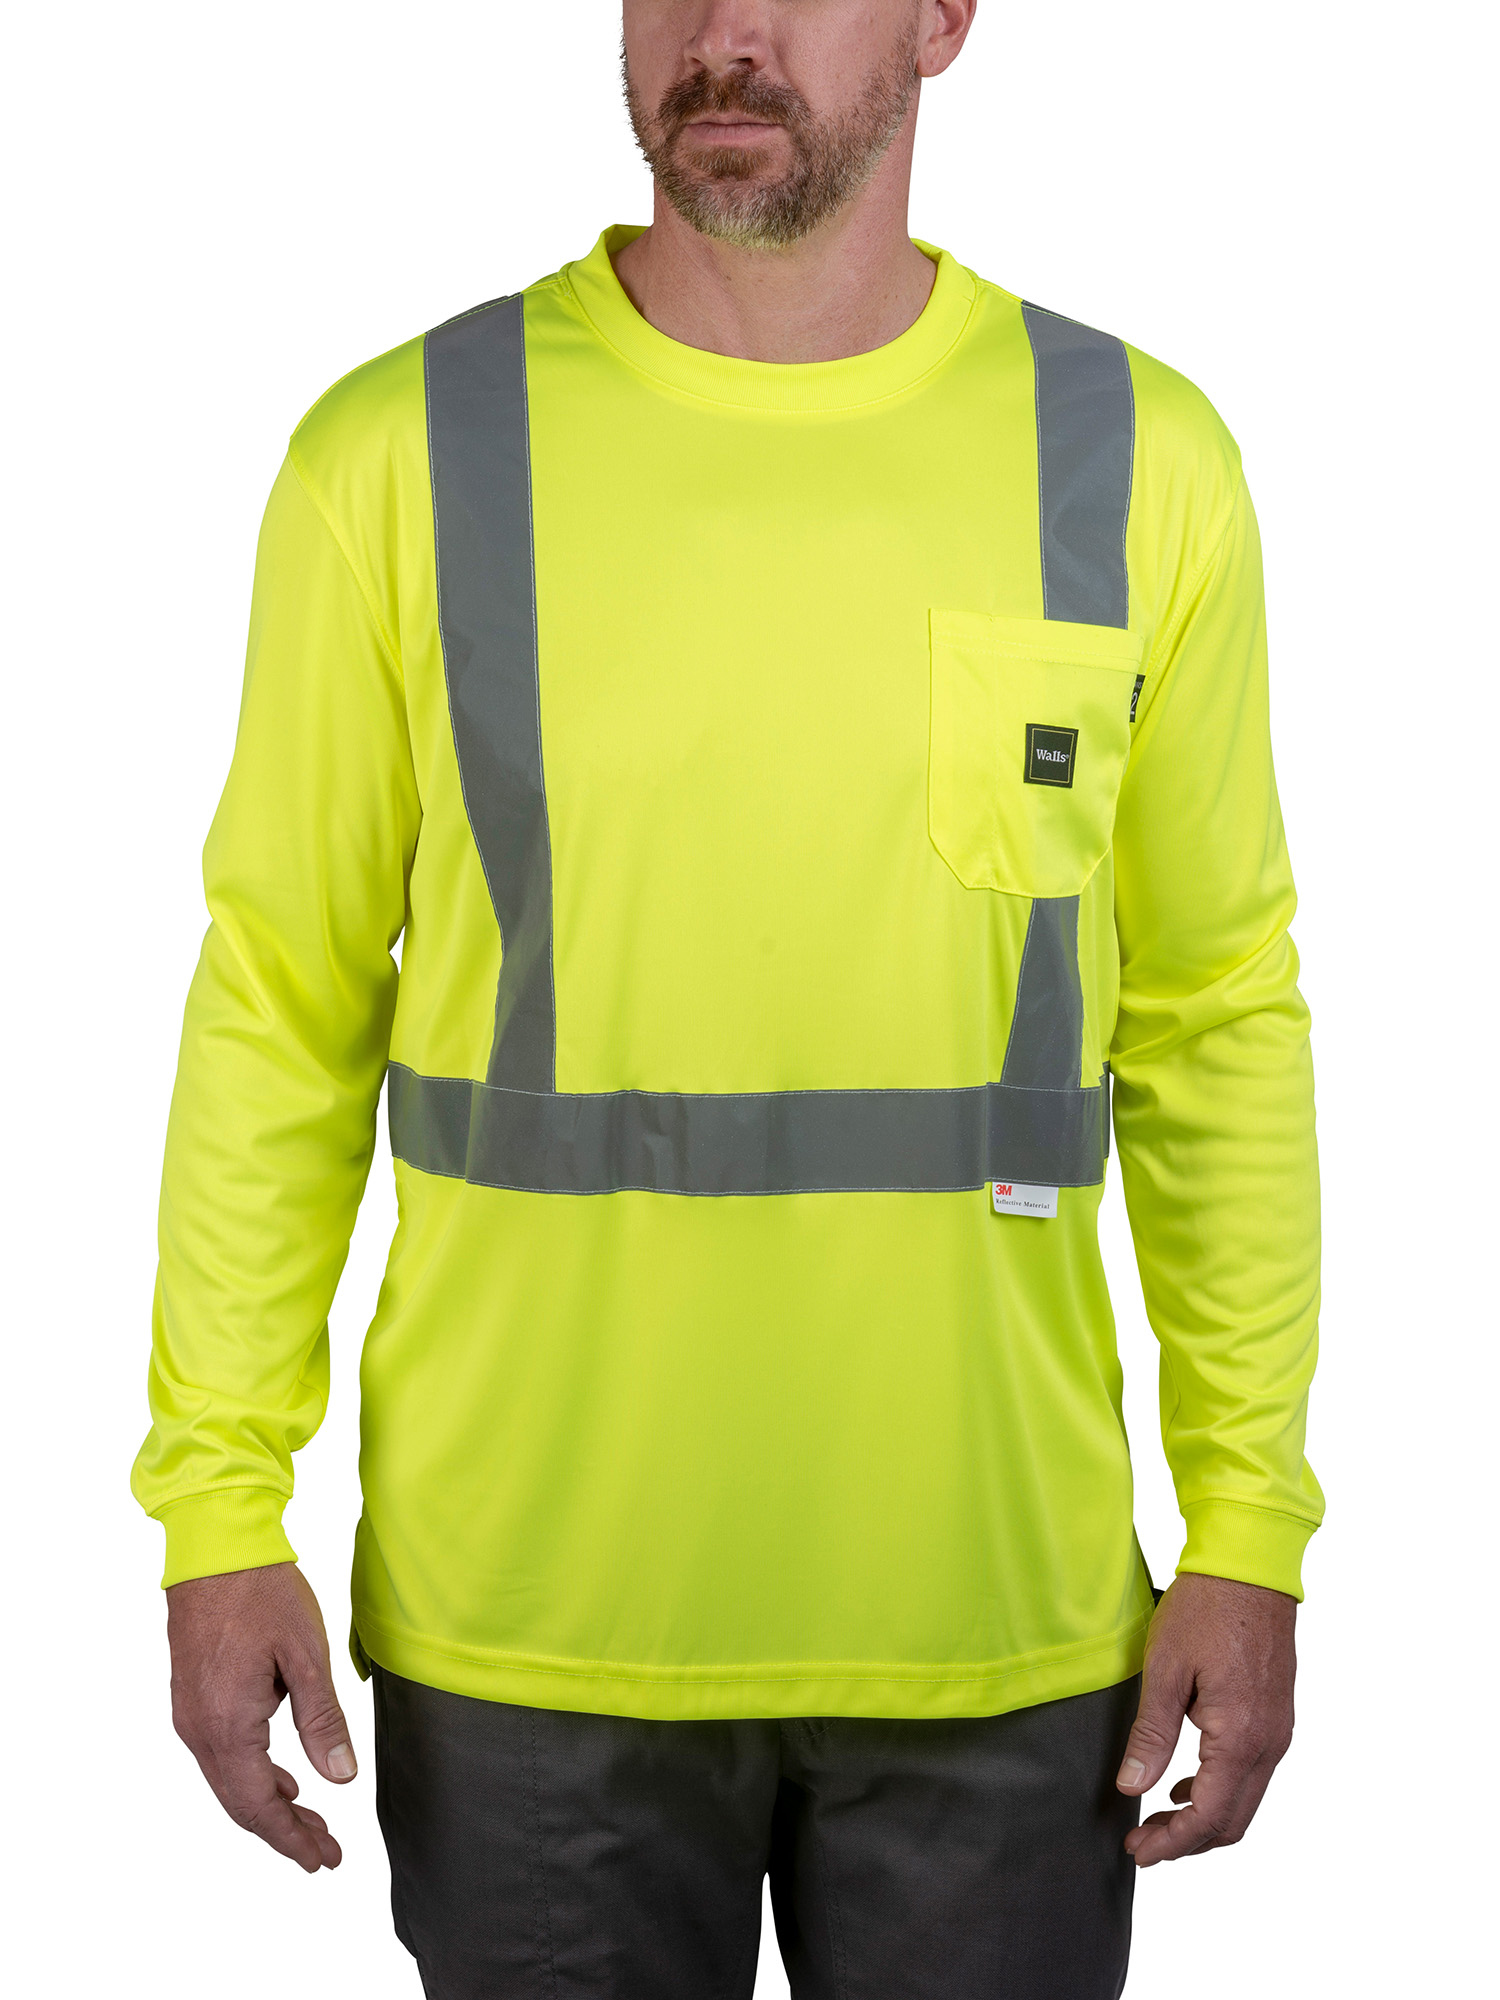 Men's Hi-Vis ANSI II Long Sleeve Tee